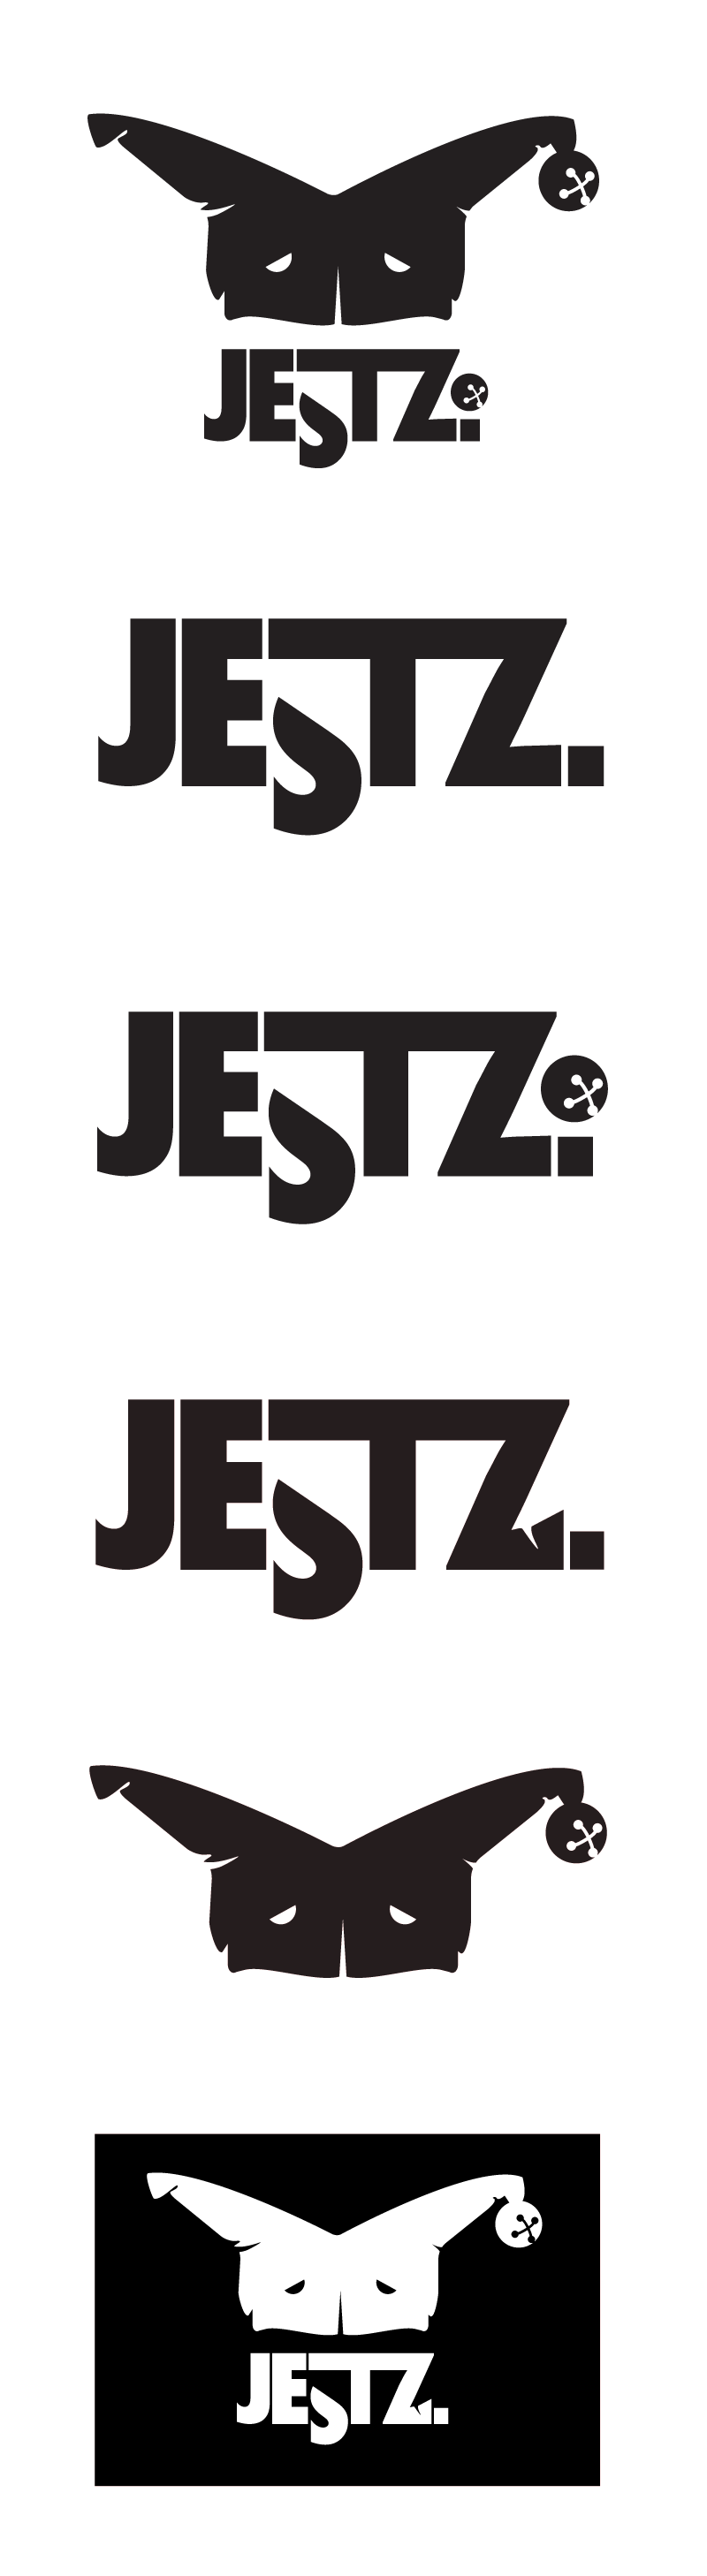 Jestz Boutique Logos, Stickers and T-Shirts by Theory Unit Graphic Design